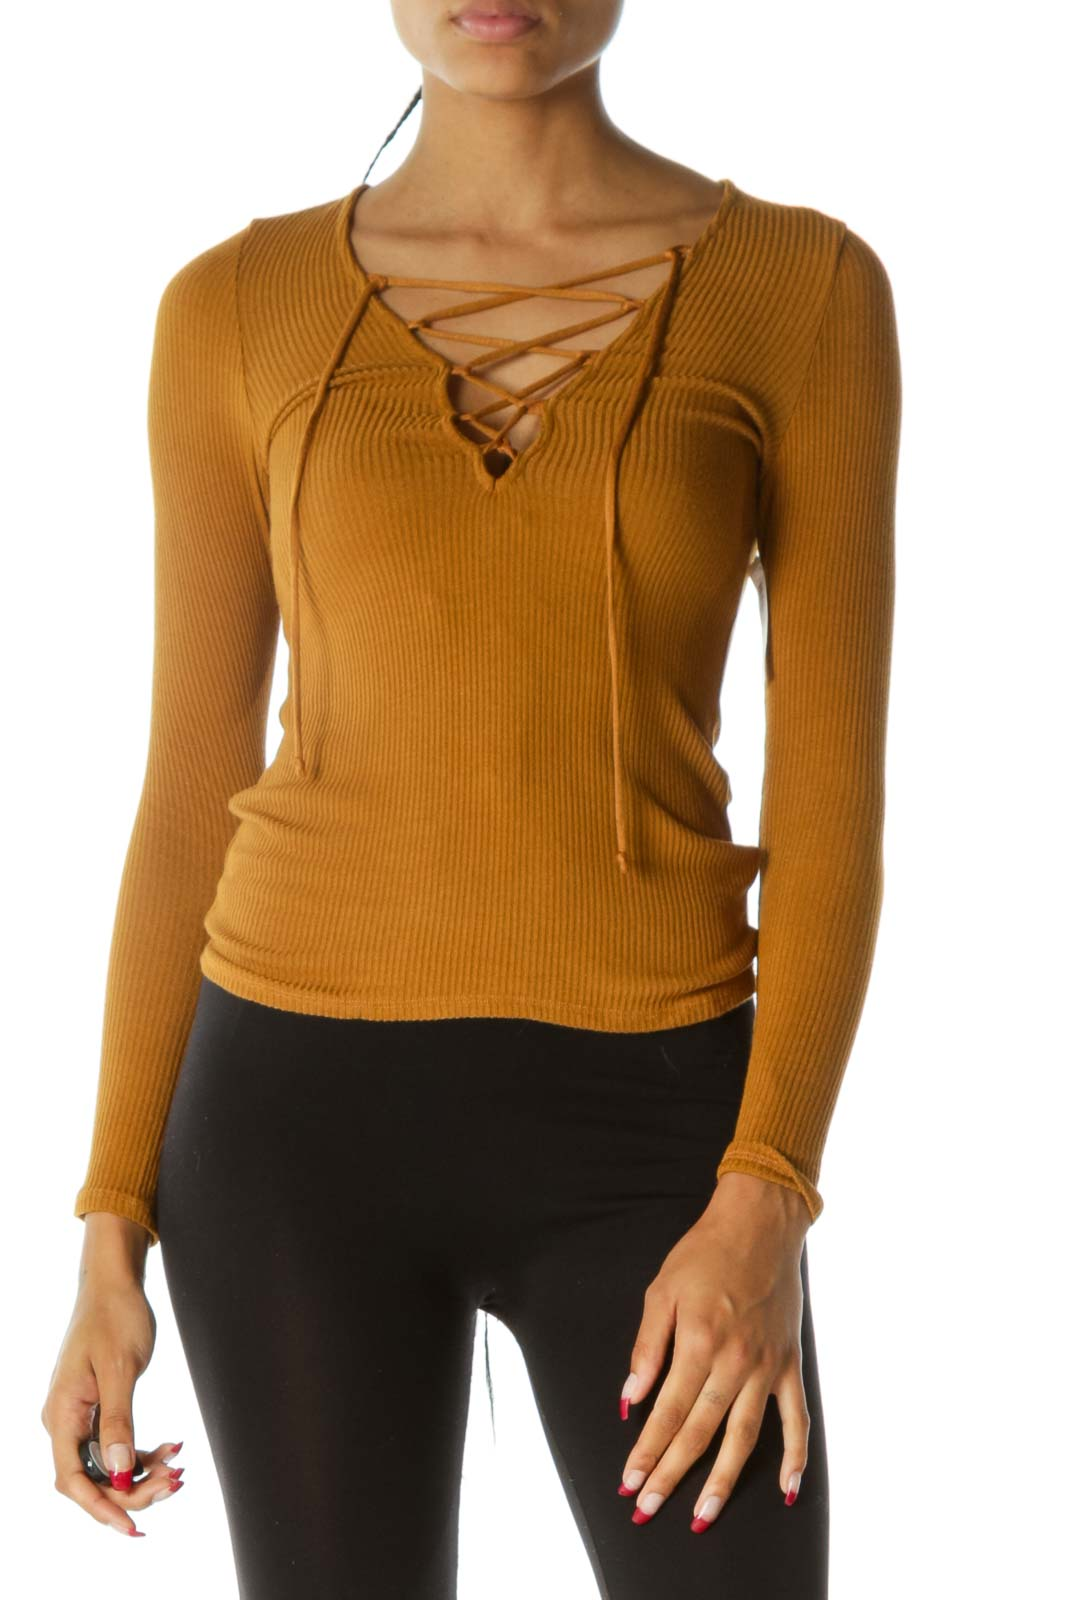 Mustard Yellow Crisscross Ribbed Texture Long Sleeve Stretch Top